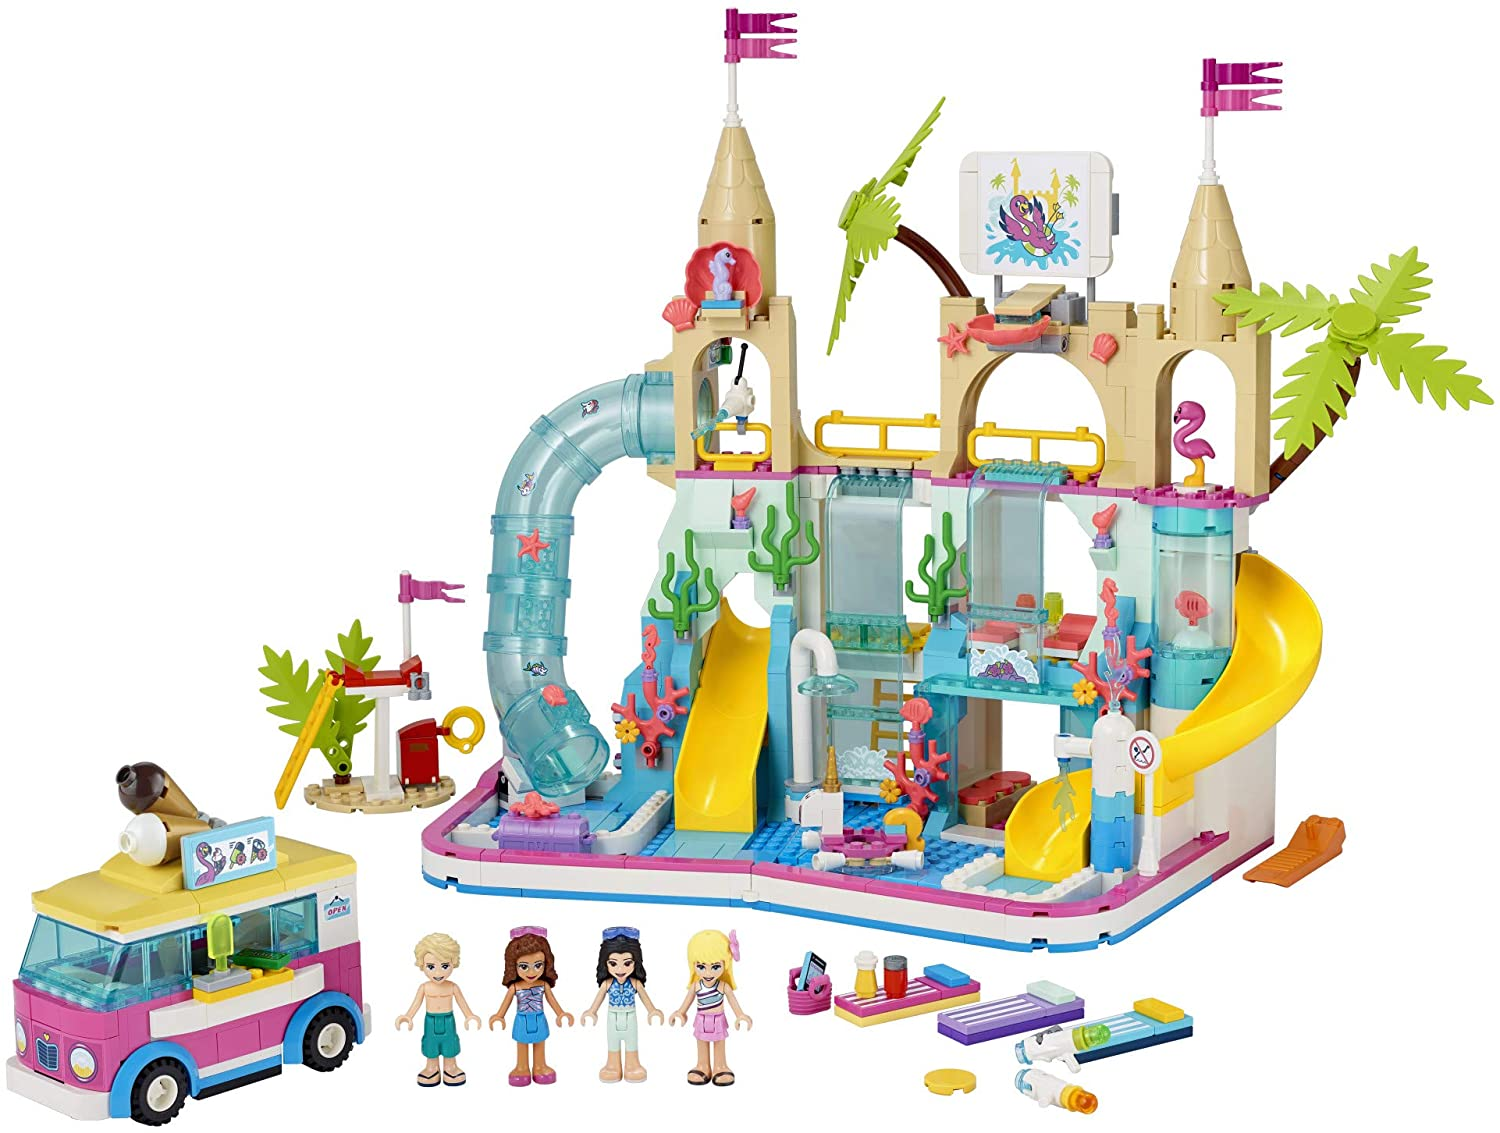 LEGO Friends Summer Fun Water Park 41430 Set Featuring Friends Stephanie Perfect Set for Creative Play Emma 1,001 Pieces Olivia and Mason Buildable Mini-Doll Figures New 2020